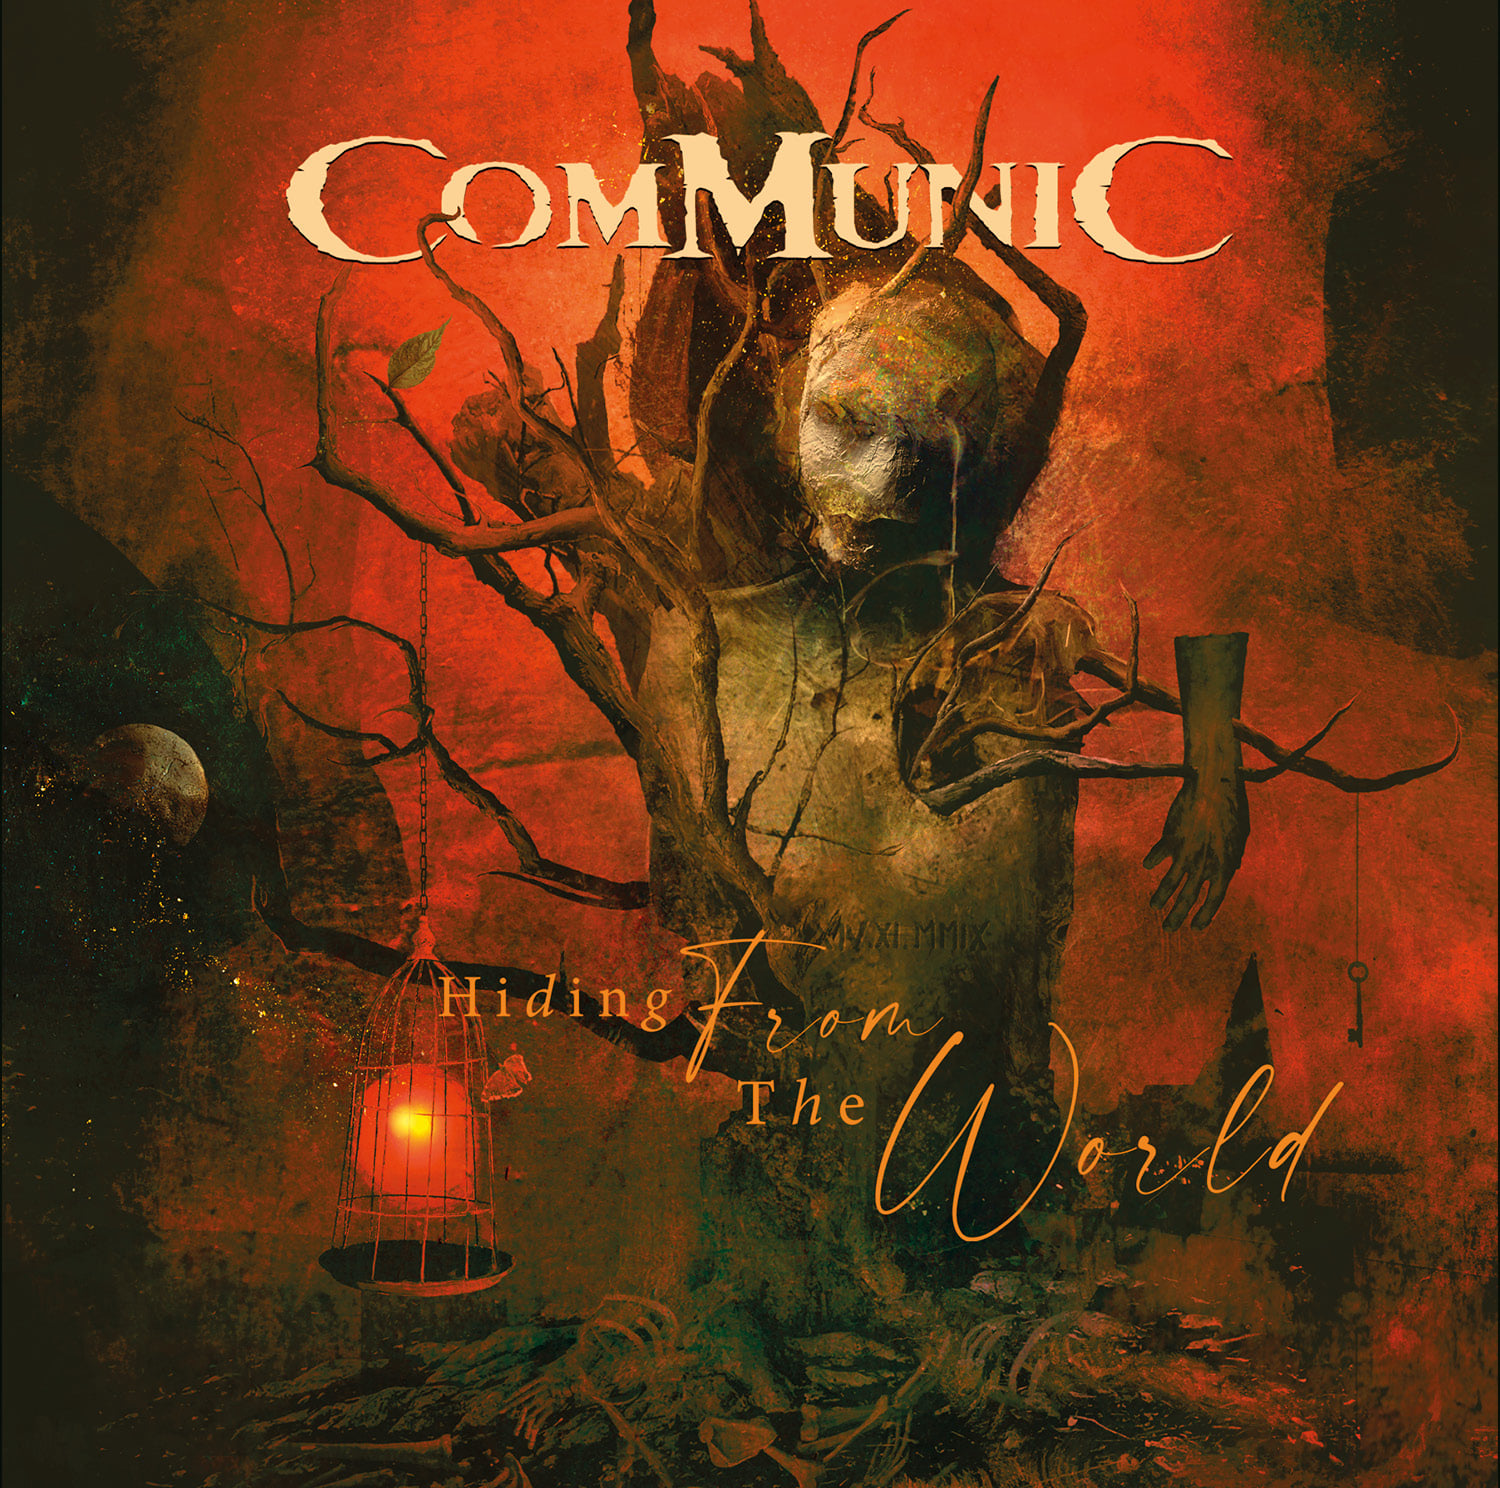 communic hiding from the world cover artwork